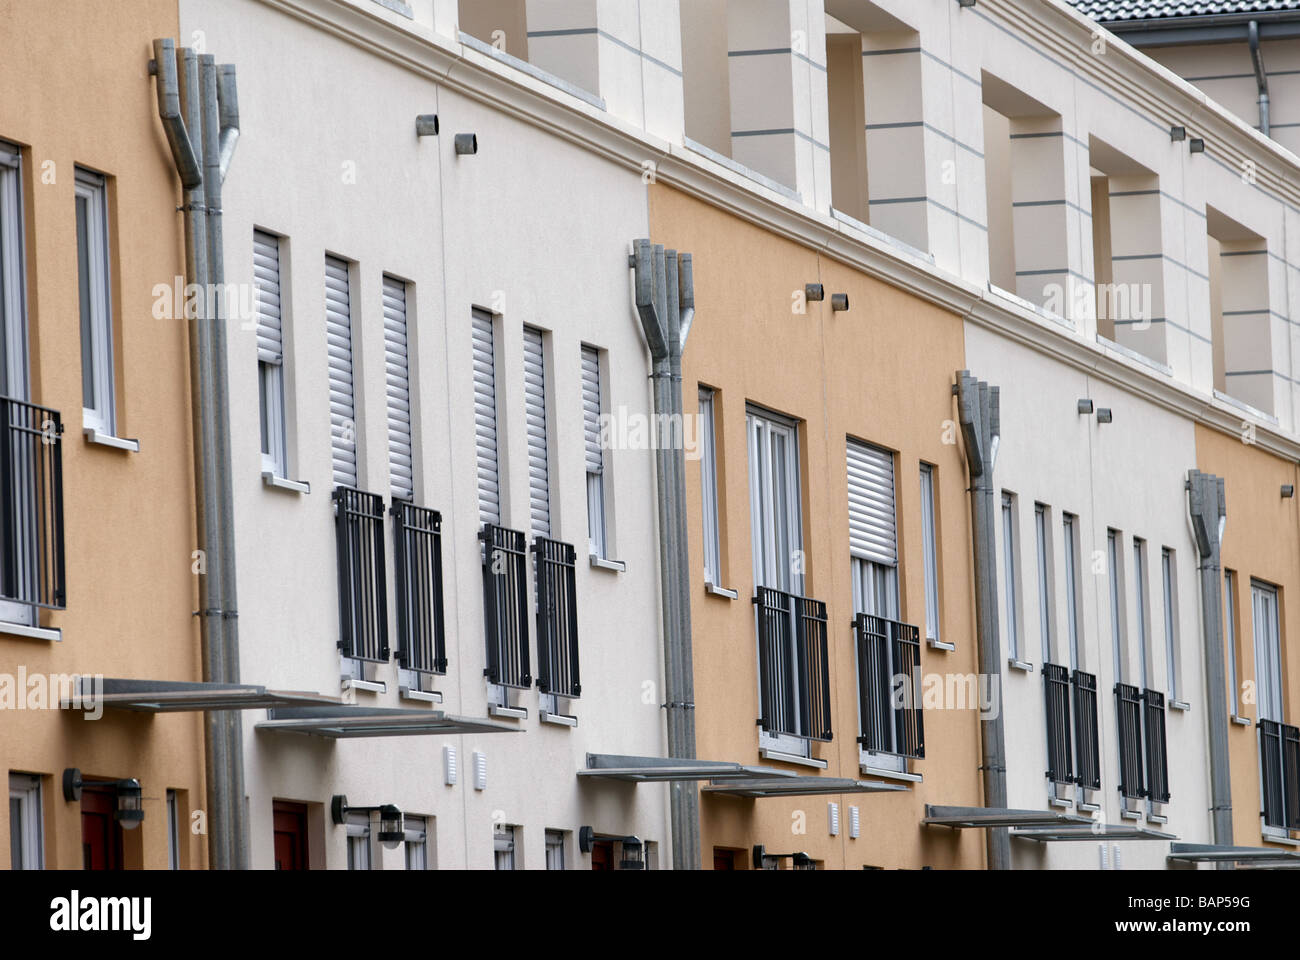 Newly built social housing development with geothermal energy heating, Cologne, North Rhine-Westphalia, Germany. - Stock Image